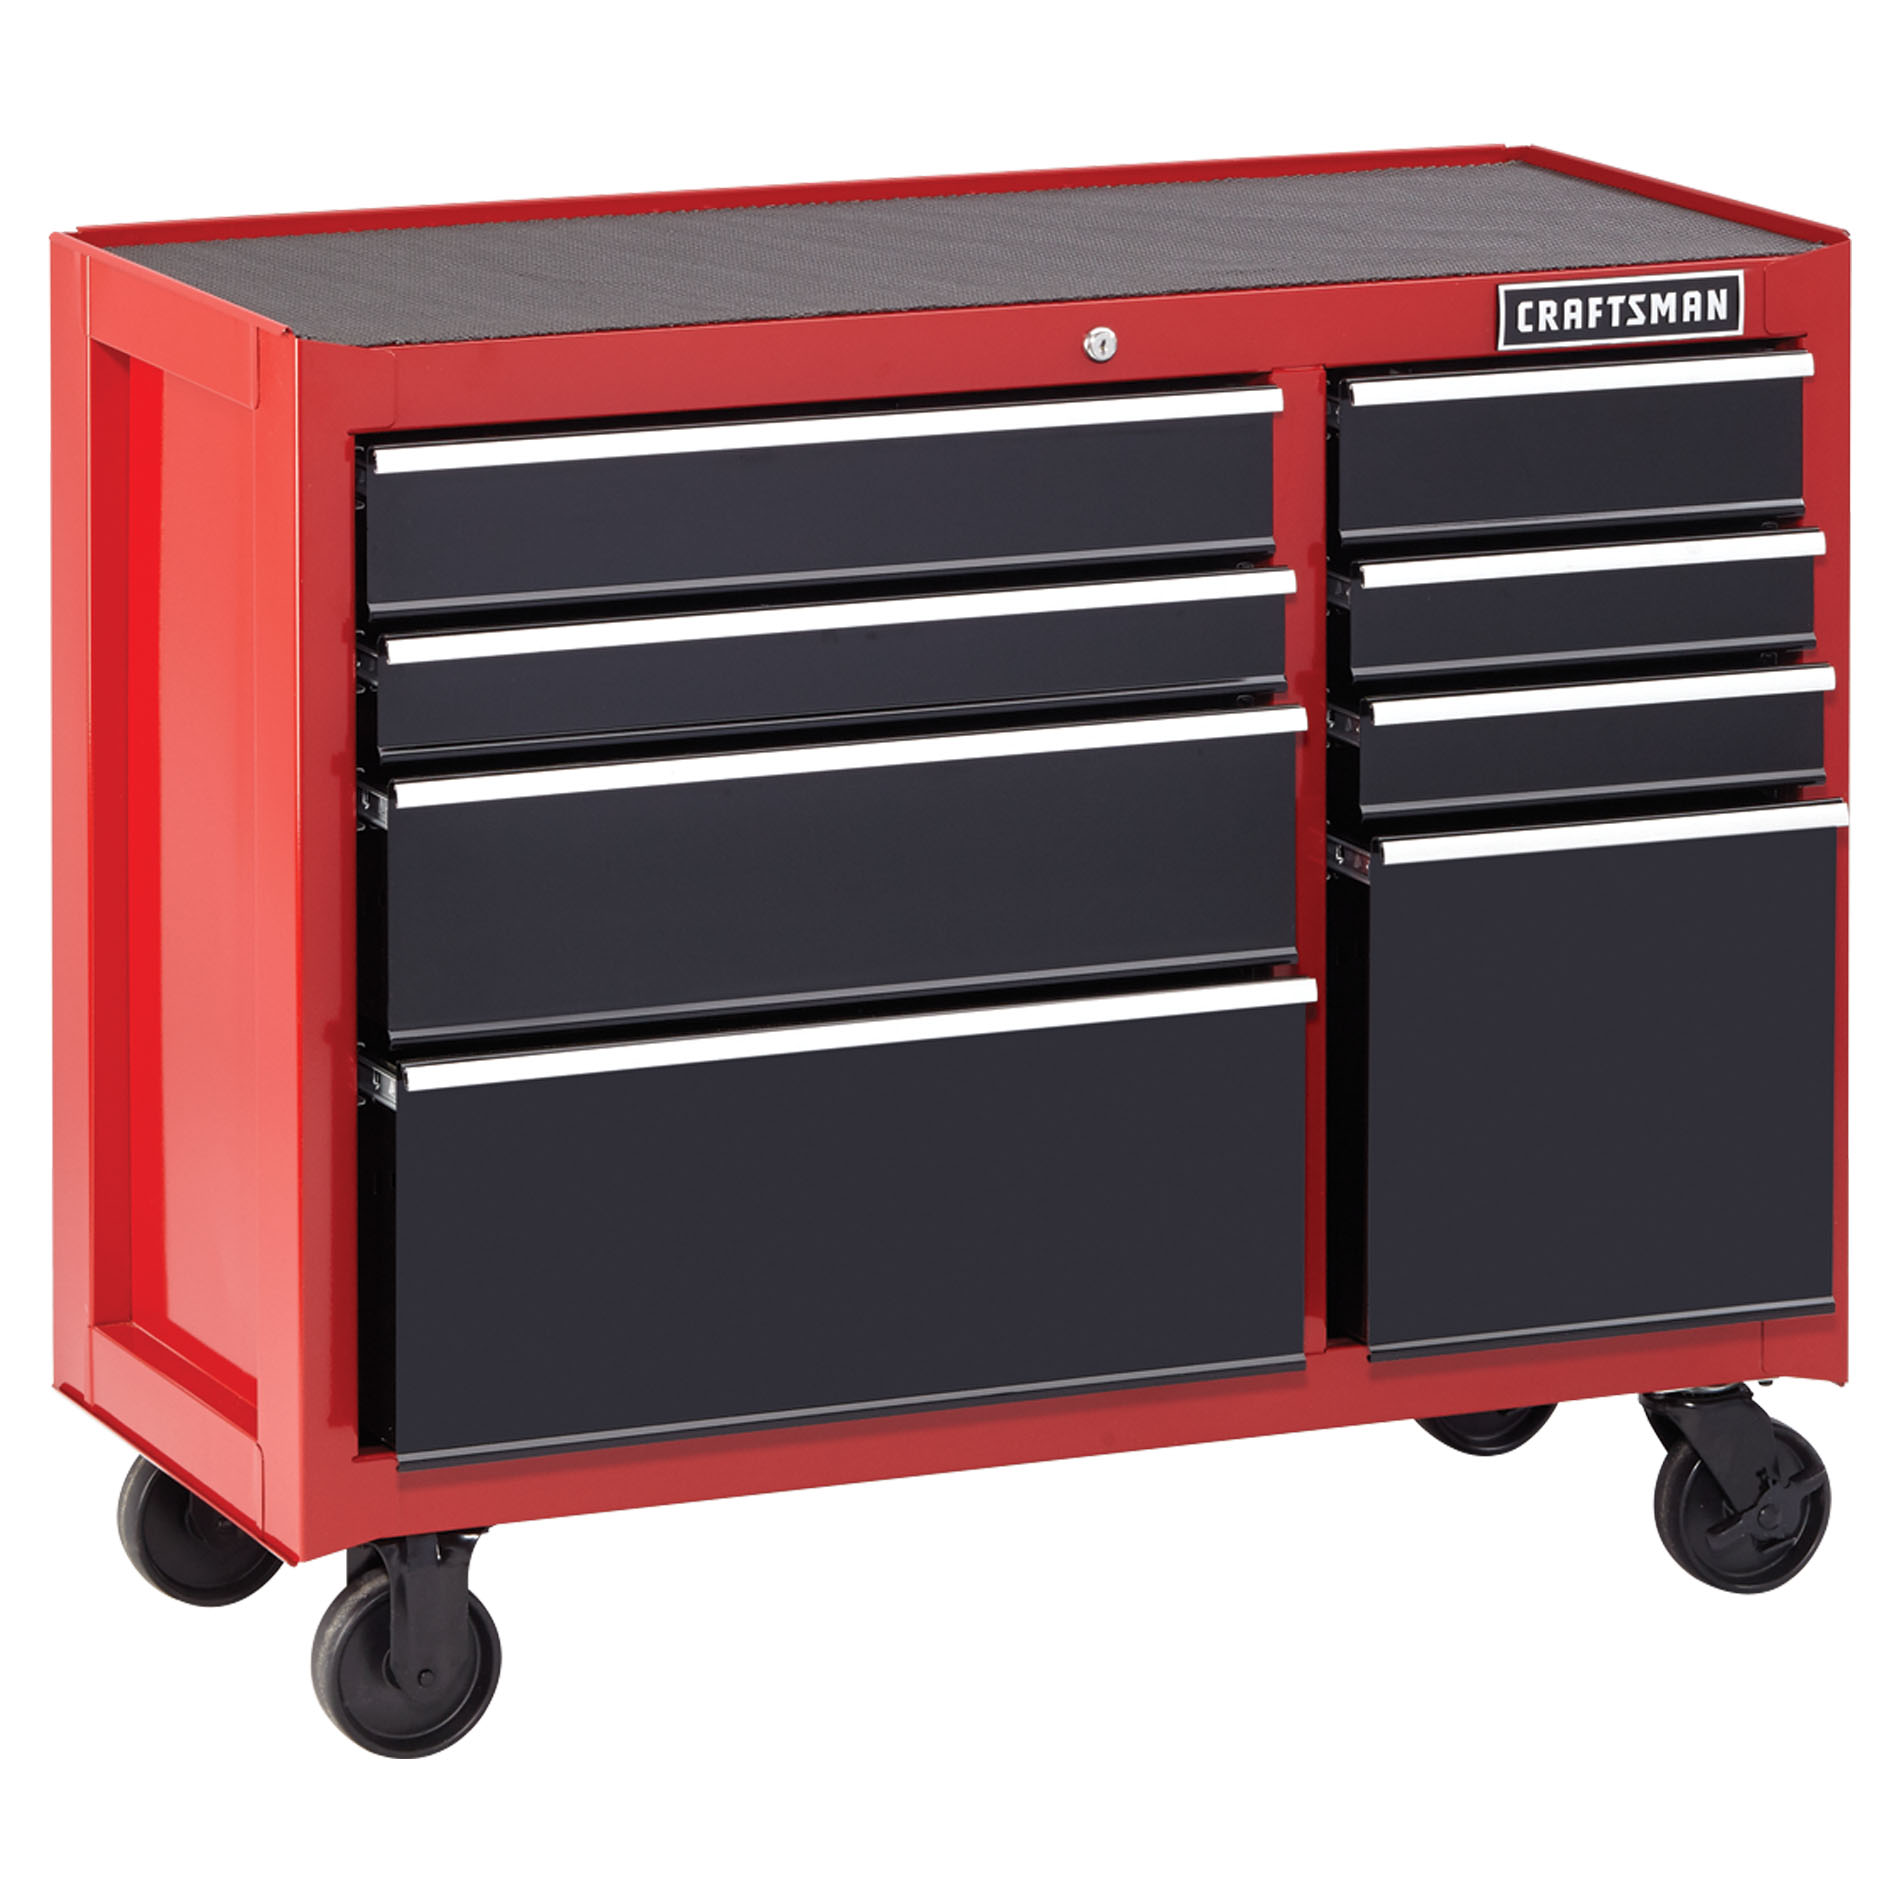 "Craftsman 41"""" 8-Drawer Heavy-Duty Rolling Cabinet - Red/Black"